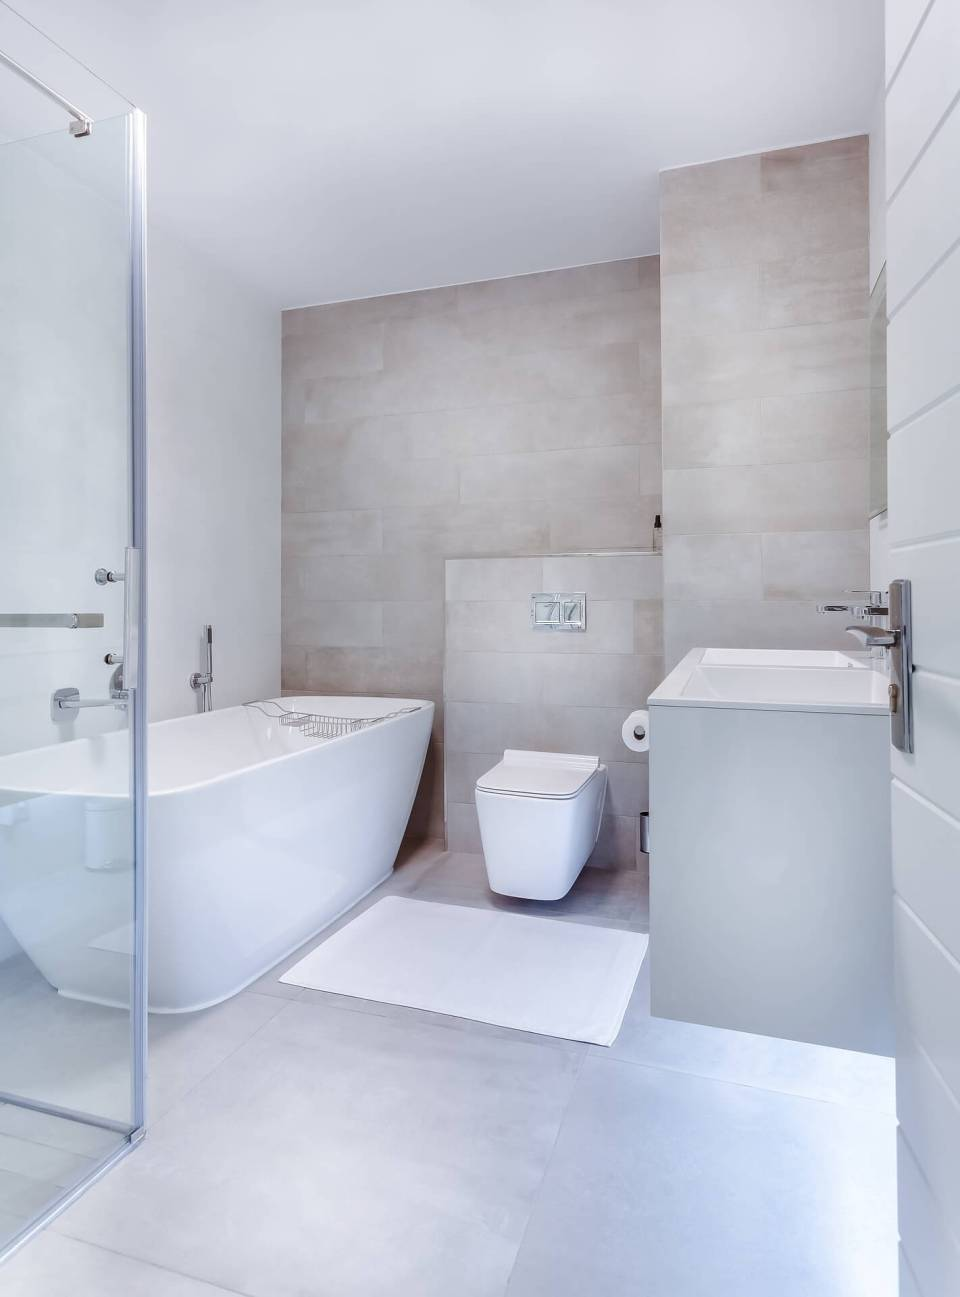 deep clean your bathroom to get your home ready for resale